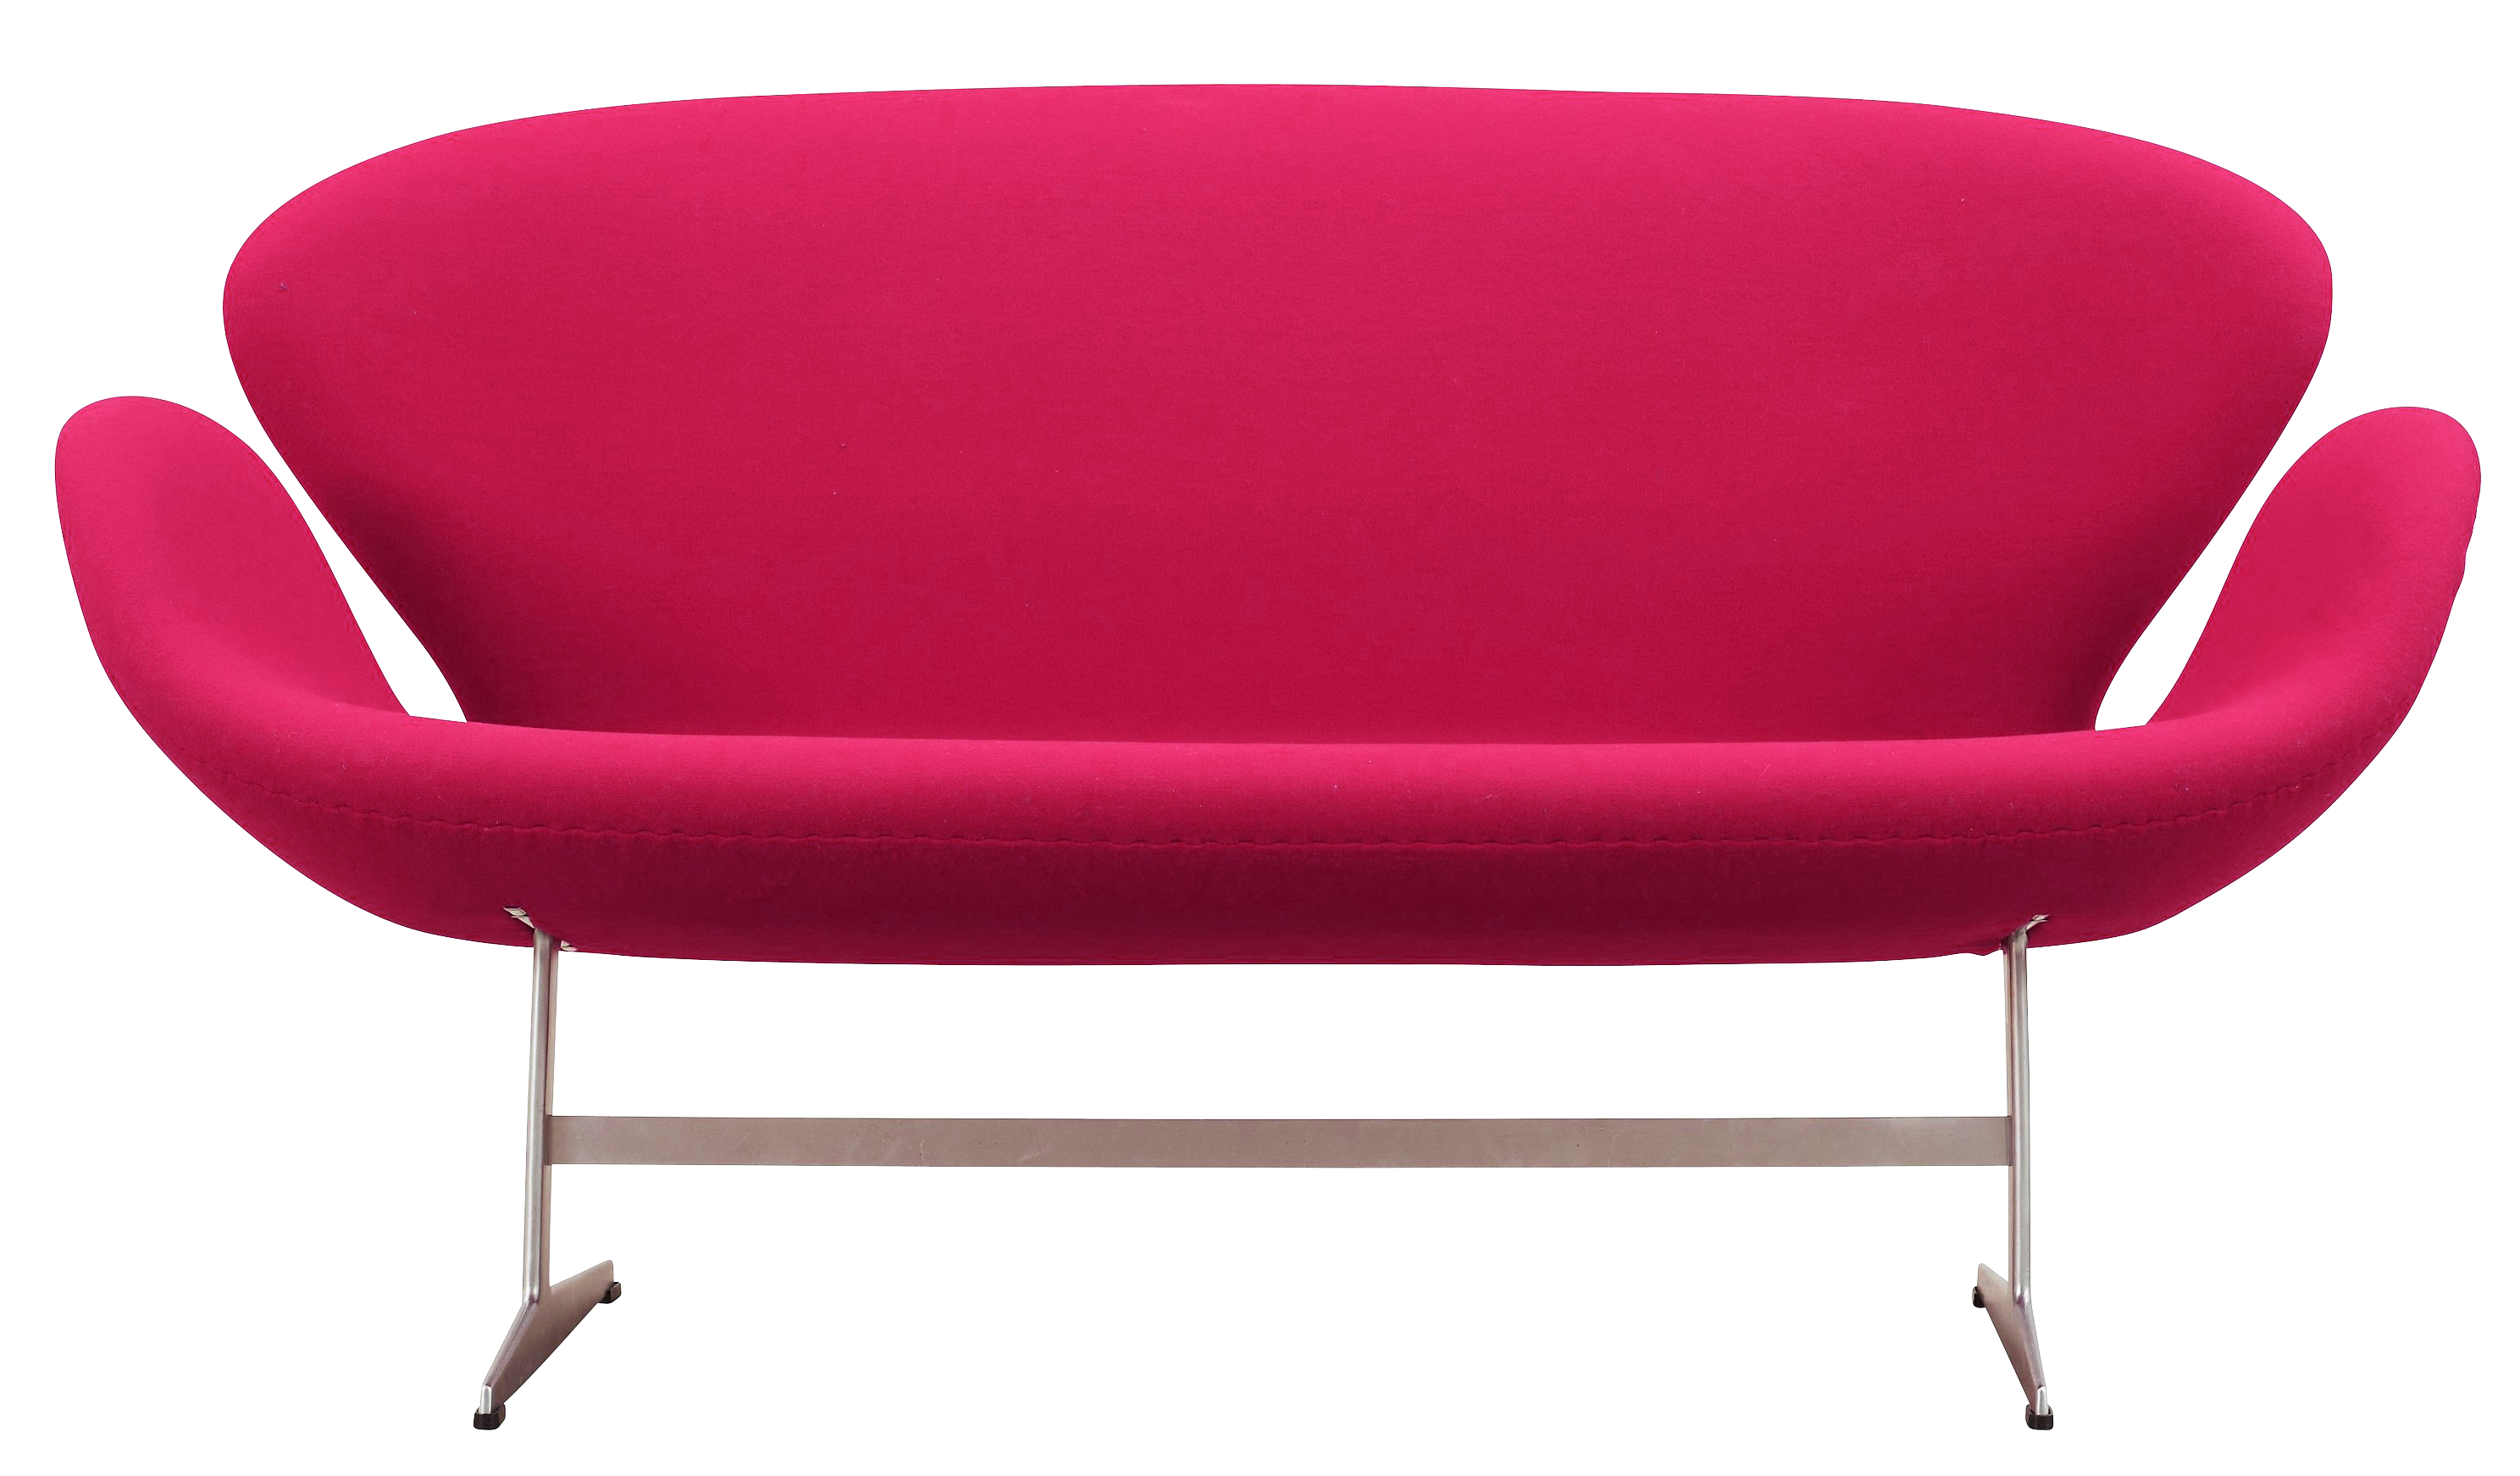 Furniture Download Png PNG Image